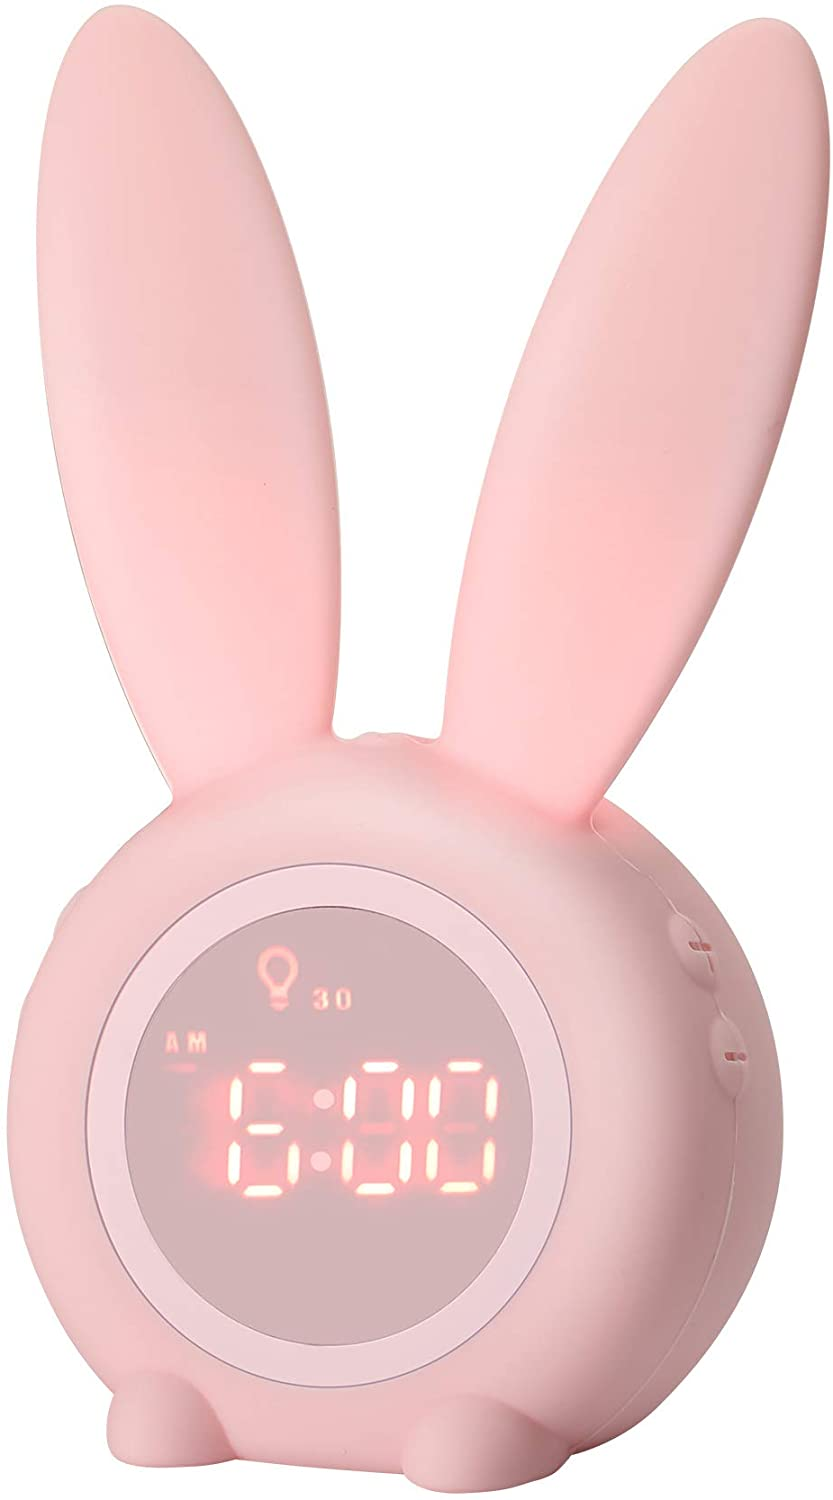 Kids Alarm Clock with Night Light for Toddlers, 5 Ringtones, Tou